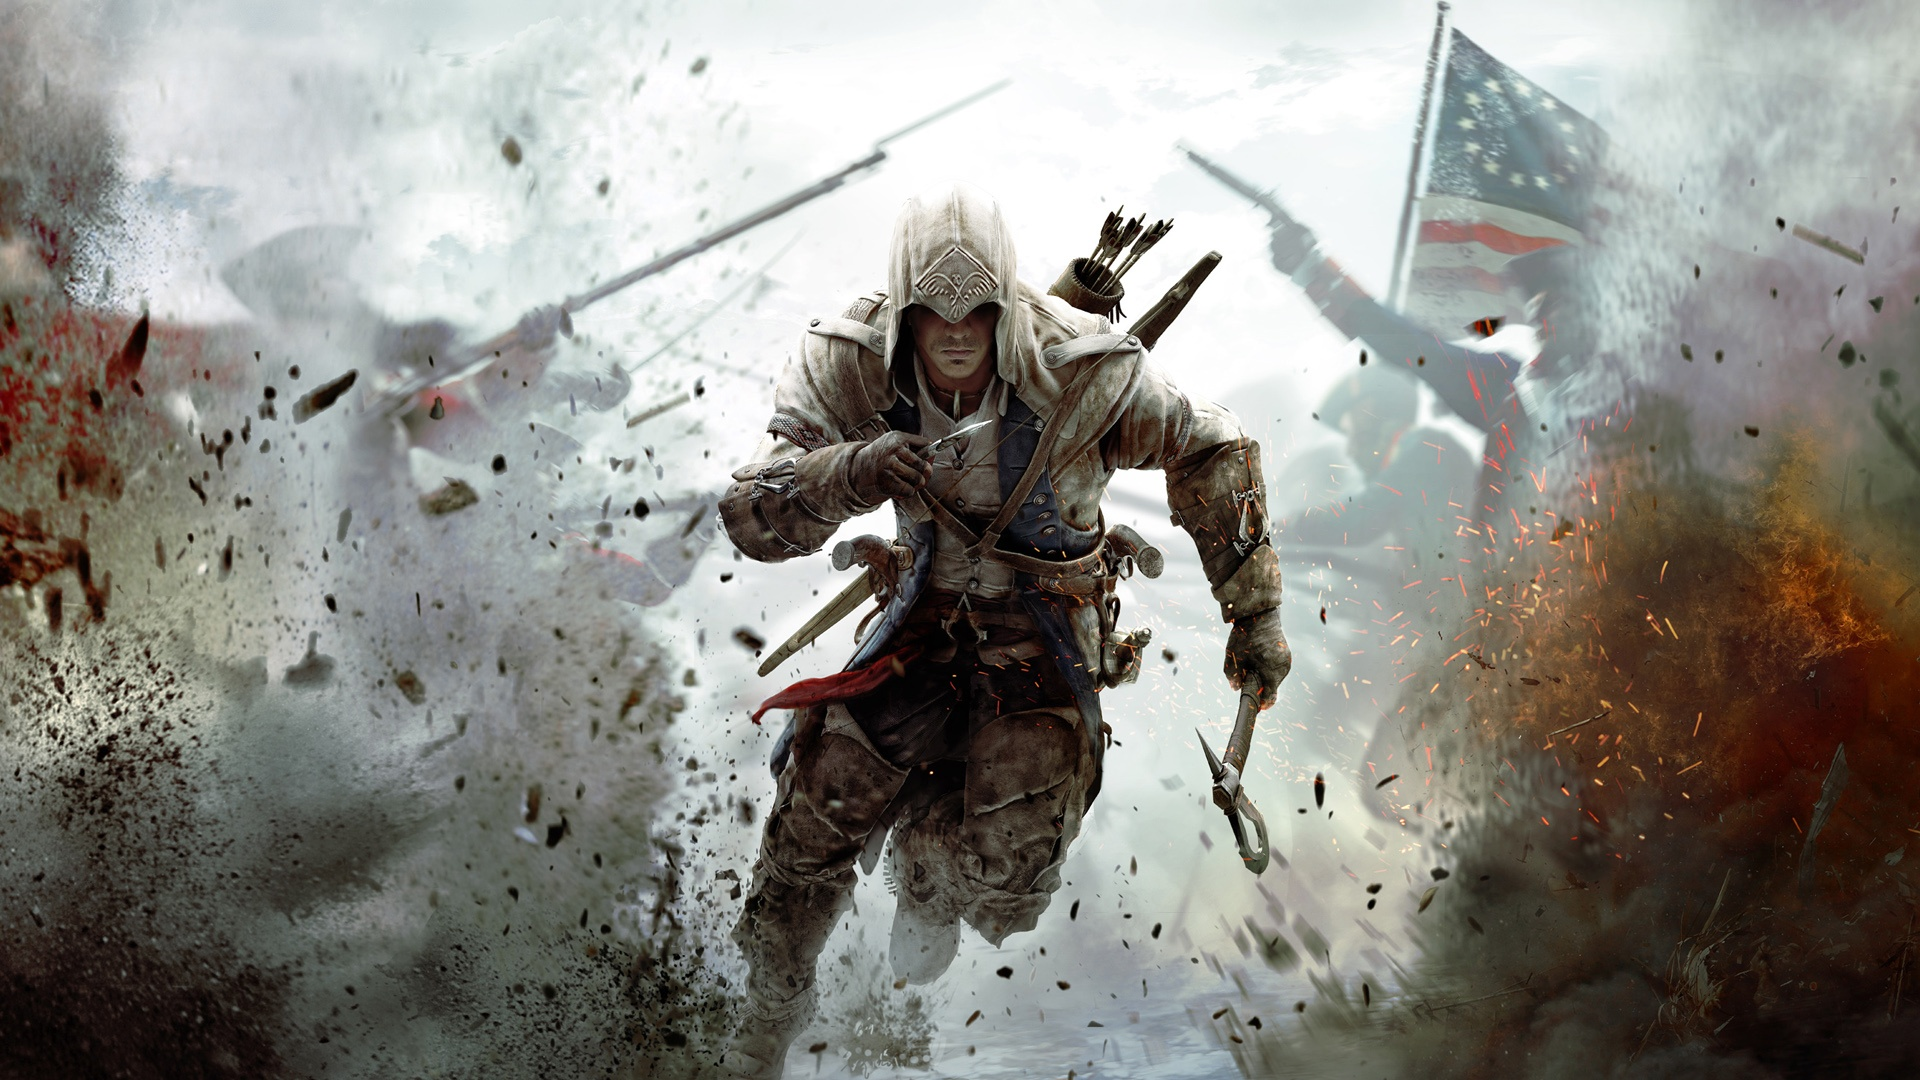 assassin s creed 3 2012 game wallpaper hd 1080p 1920x1080